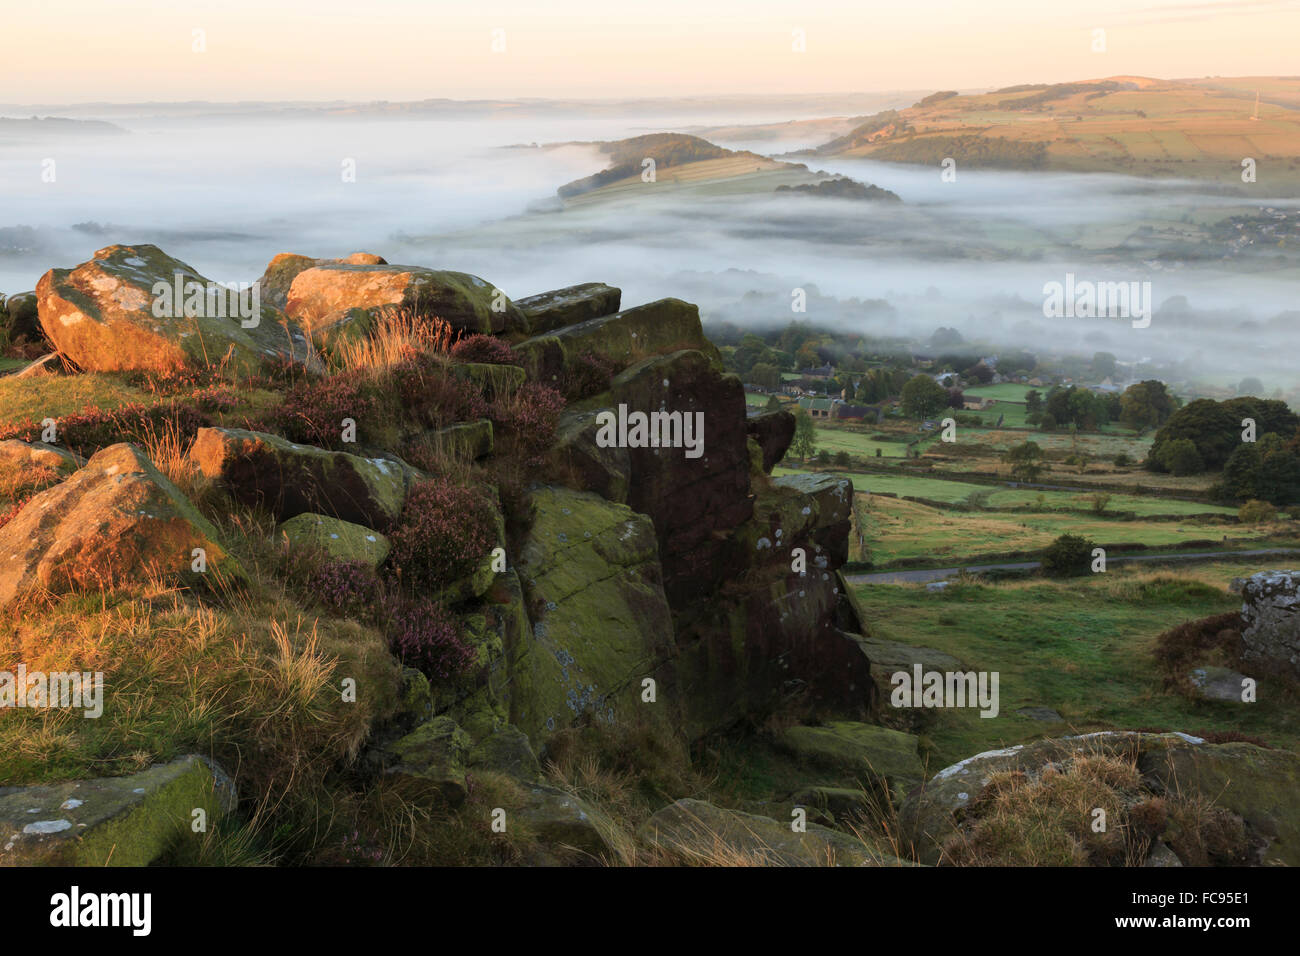 Mist folds over Curbar village, fields and woods from Curbar Edge with heather, Peak District, Derbyshire, England, - Stock Image